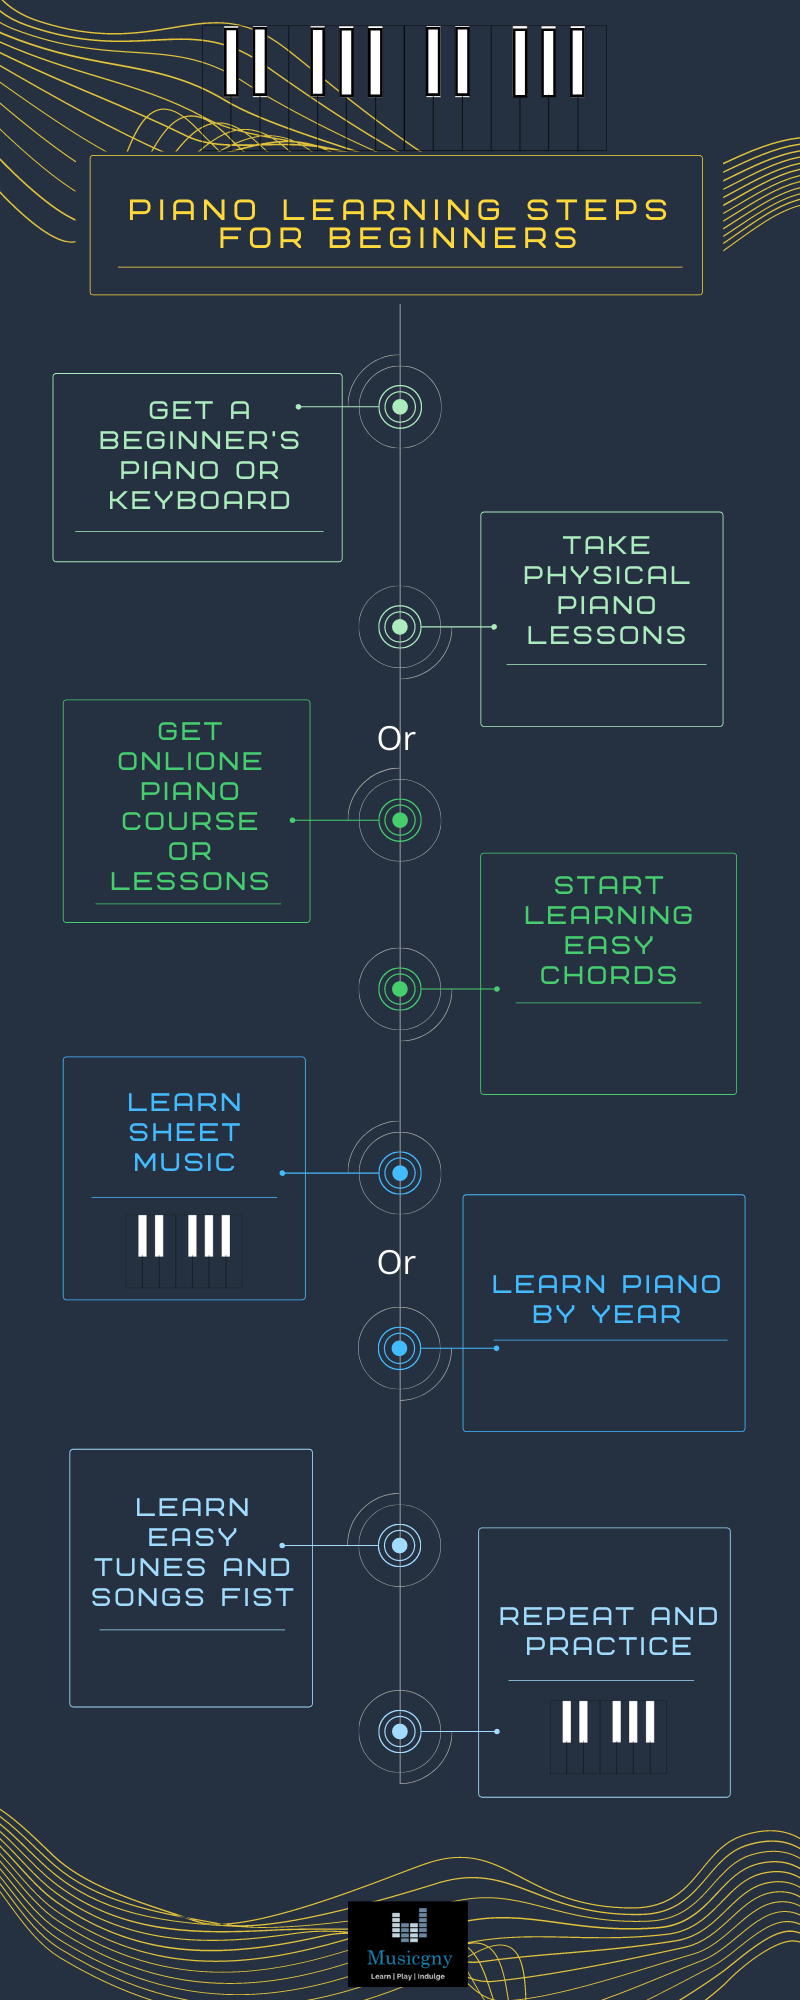 Piano Learning Steps for Beginners